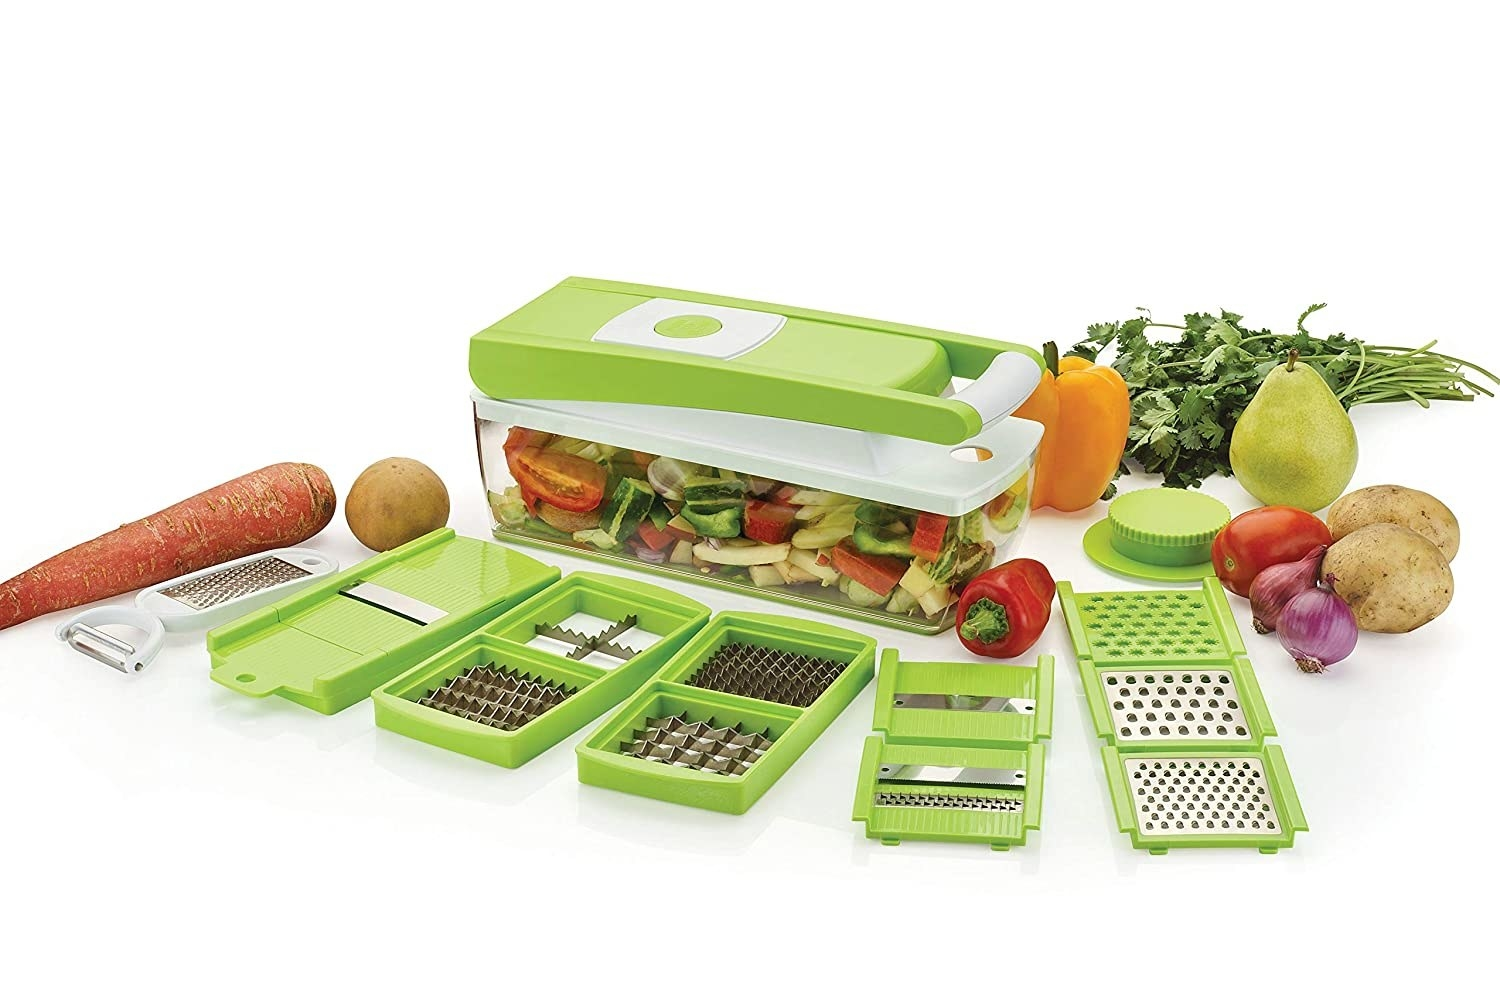 The all-in-one kitchen tool pictured with its multiple cutting, dicing, slicing and grating tools.